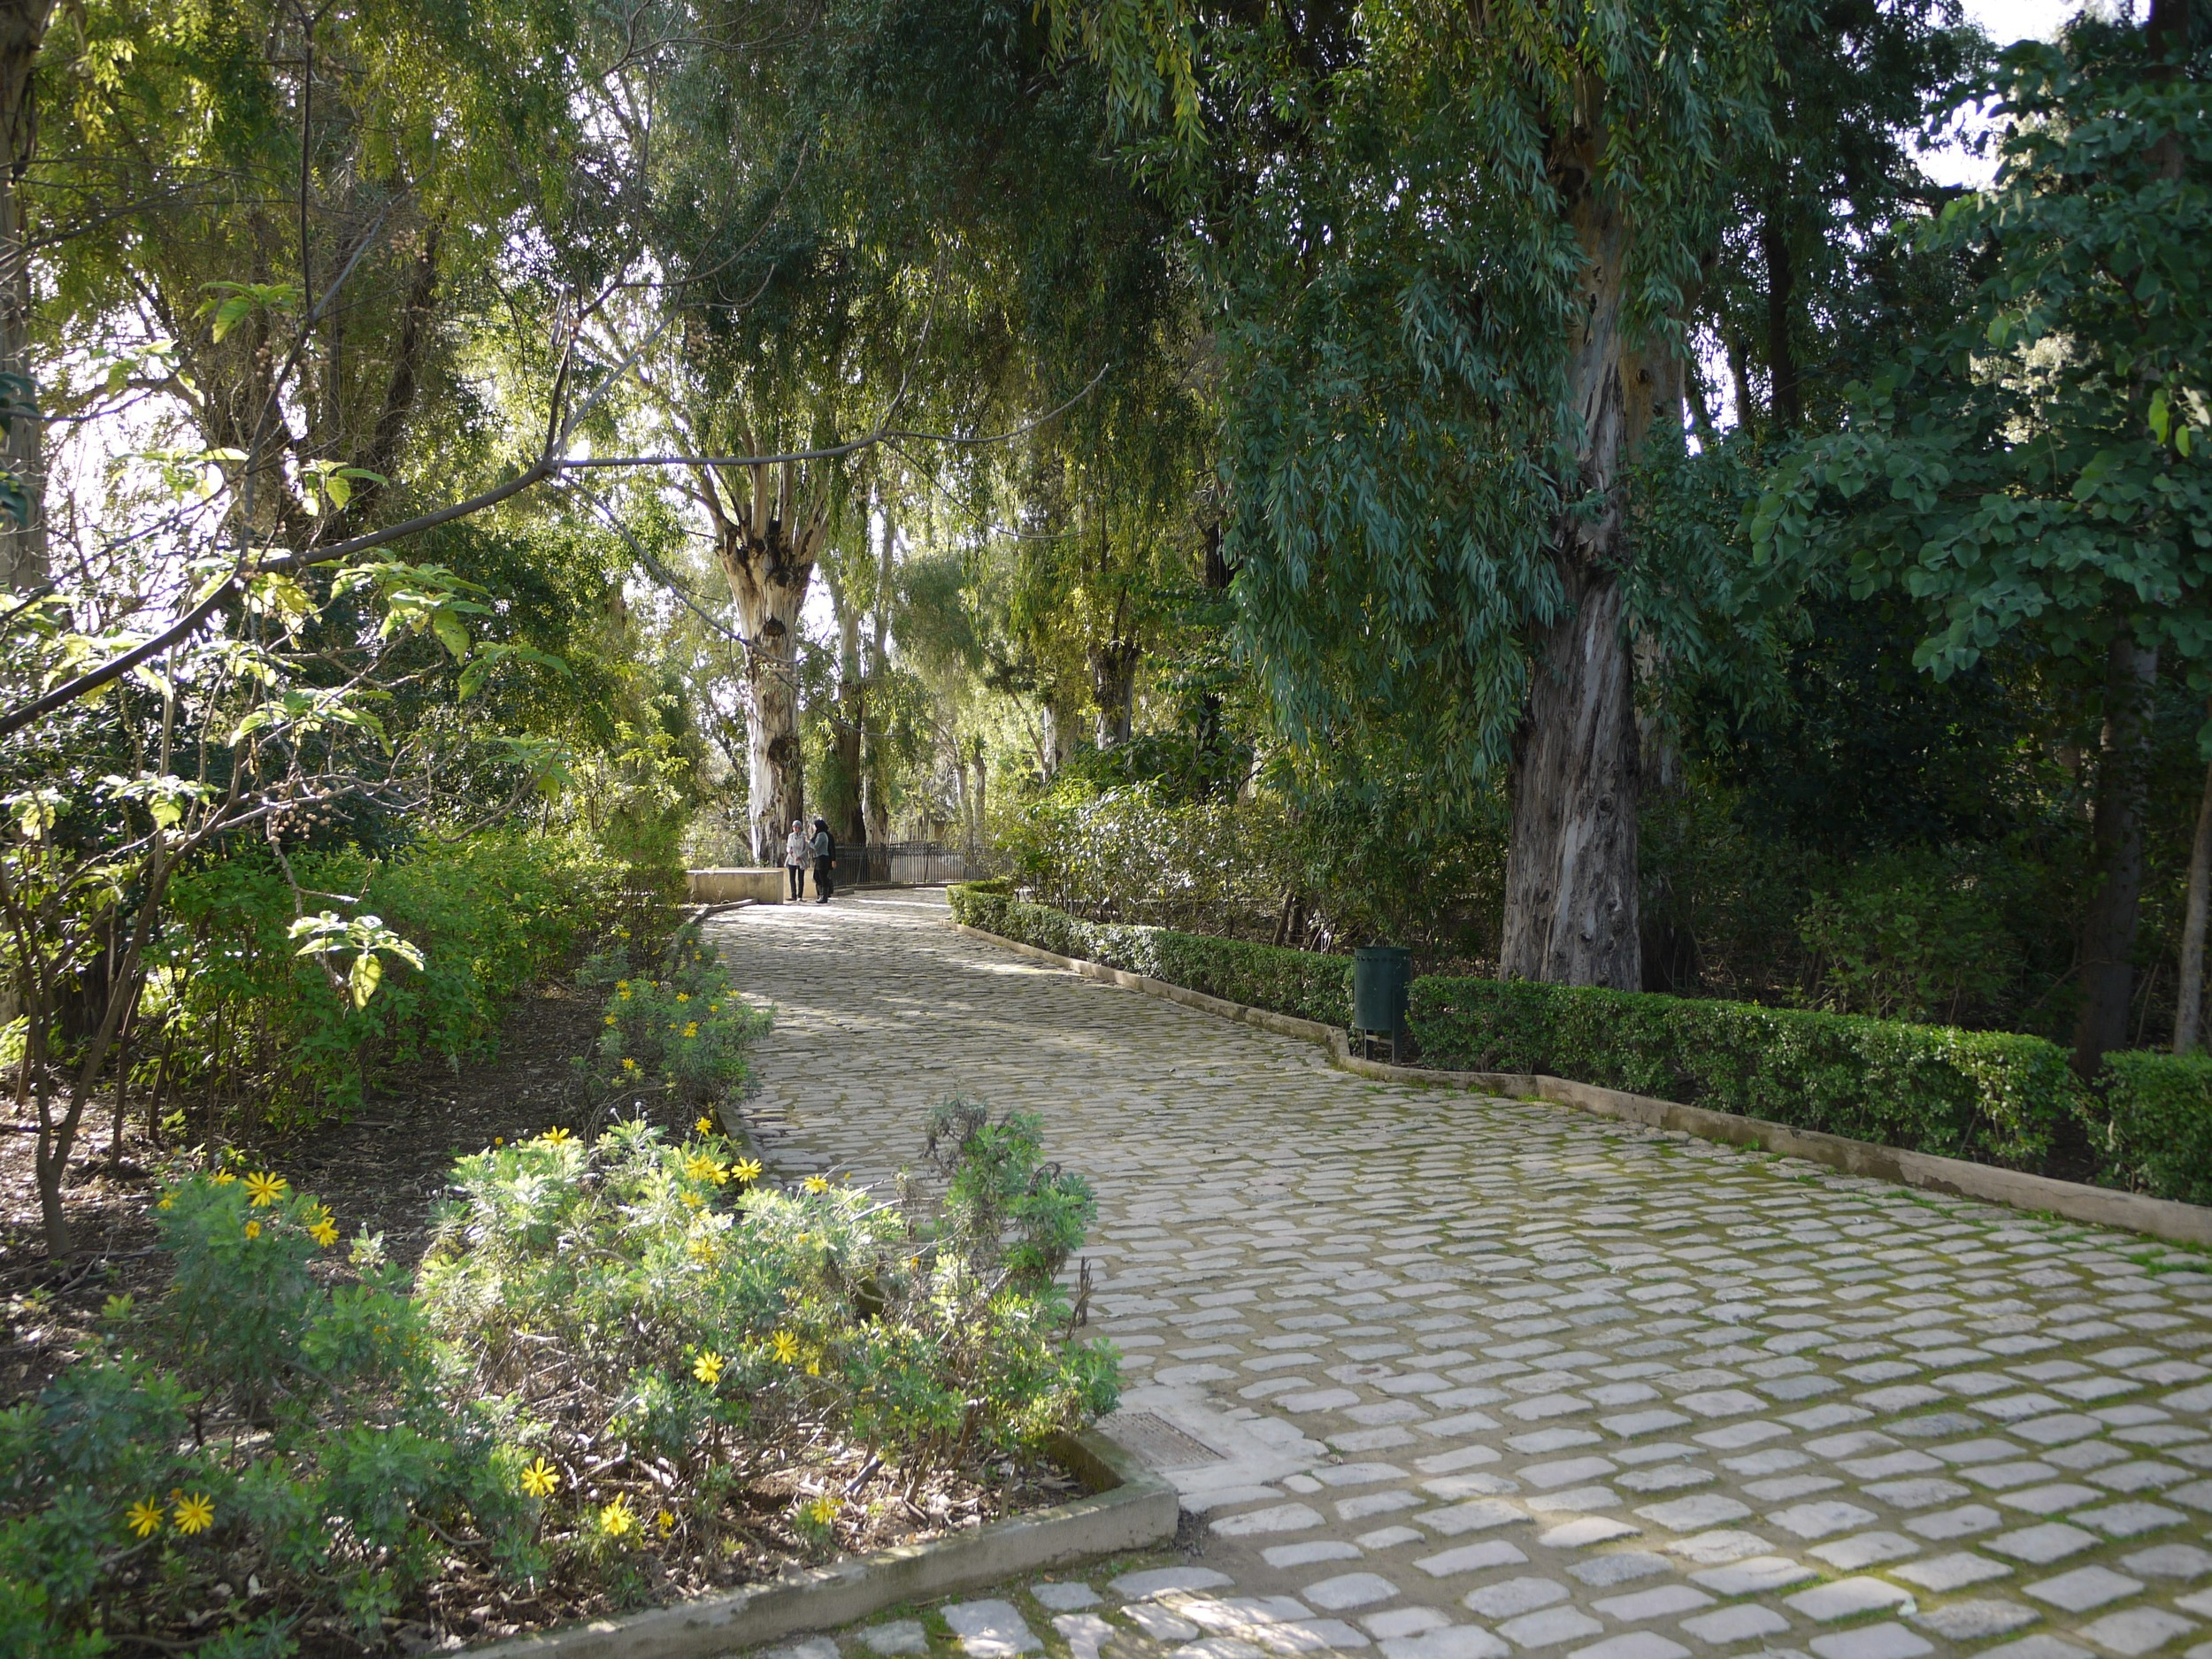 The public garden in Fez, an incredible oasis of green after the dense, packed passageways of the old medina.